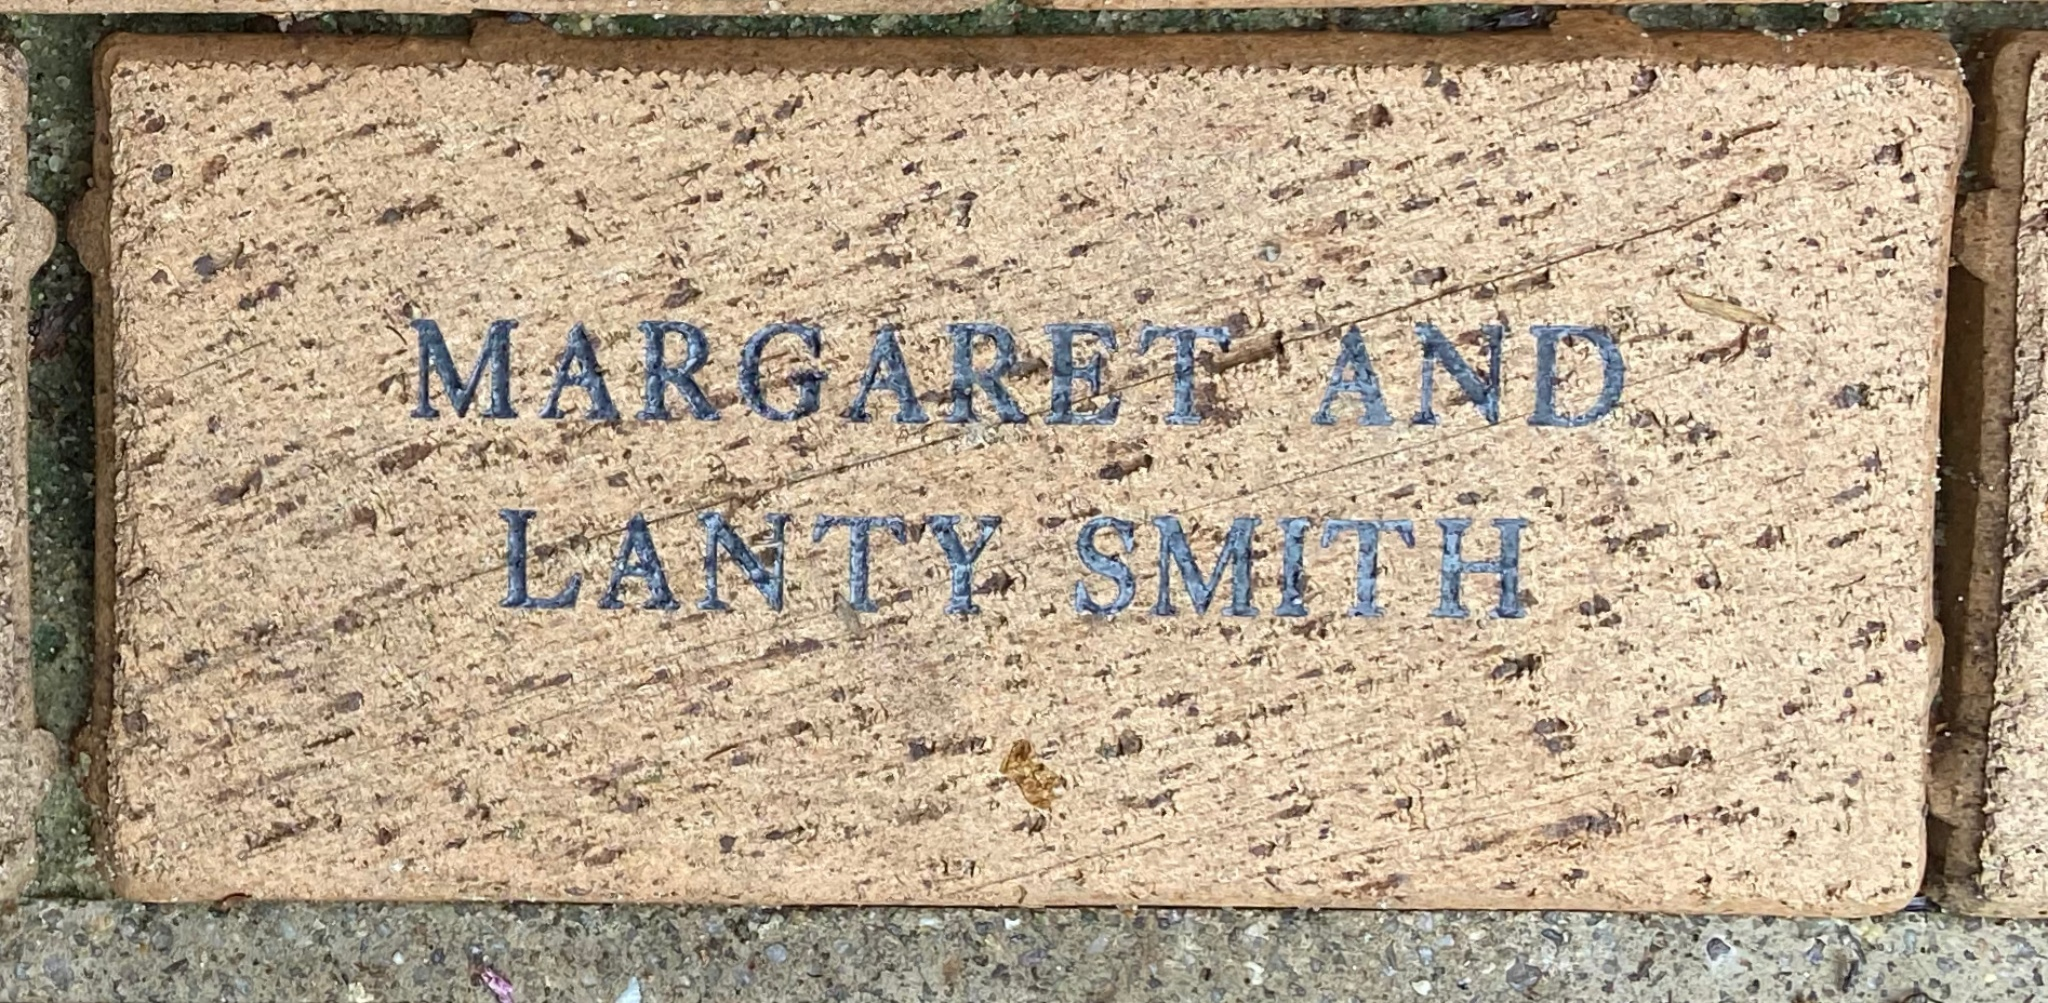 MARGARET AND LANTY SMITH